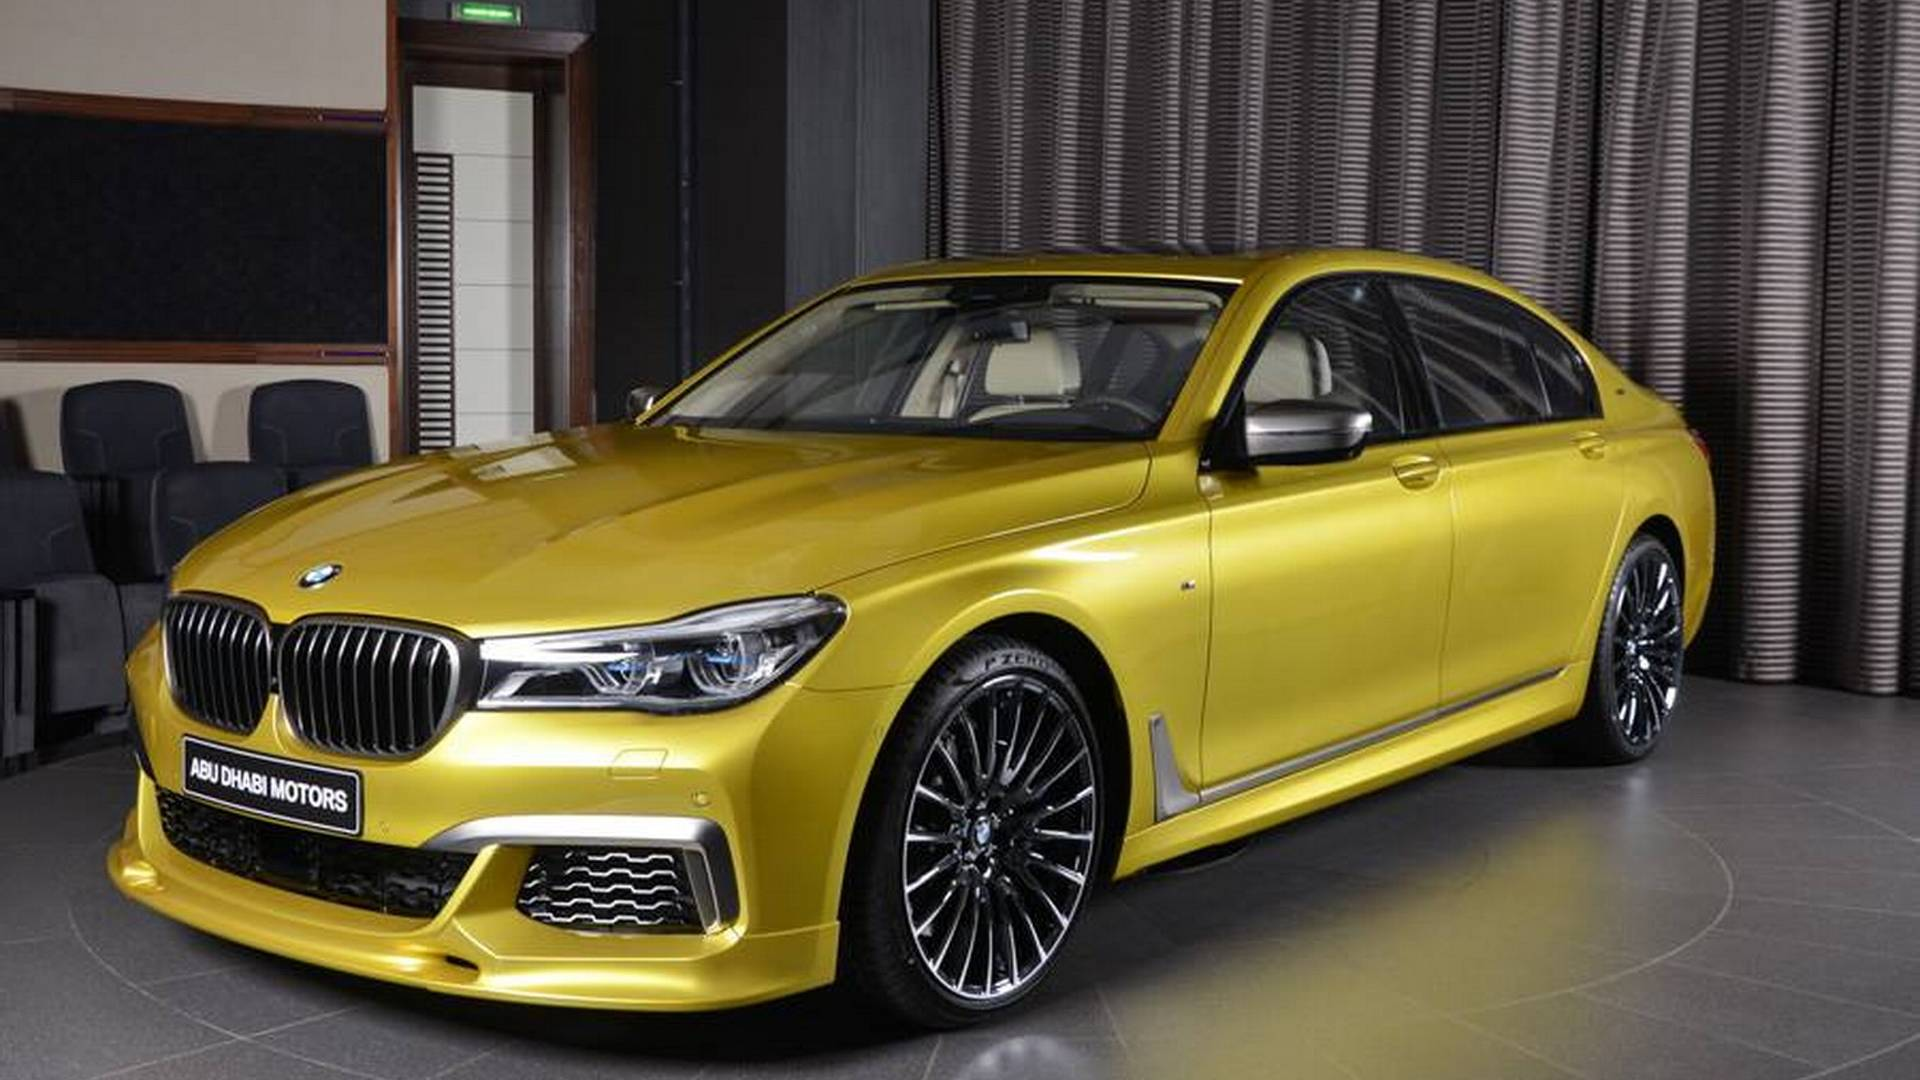 BMW_M60Li_Austin_Yellow_01